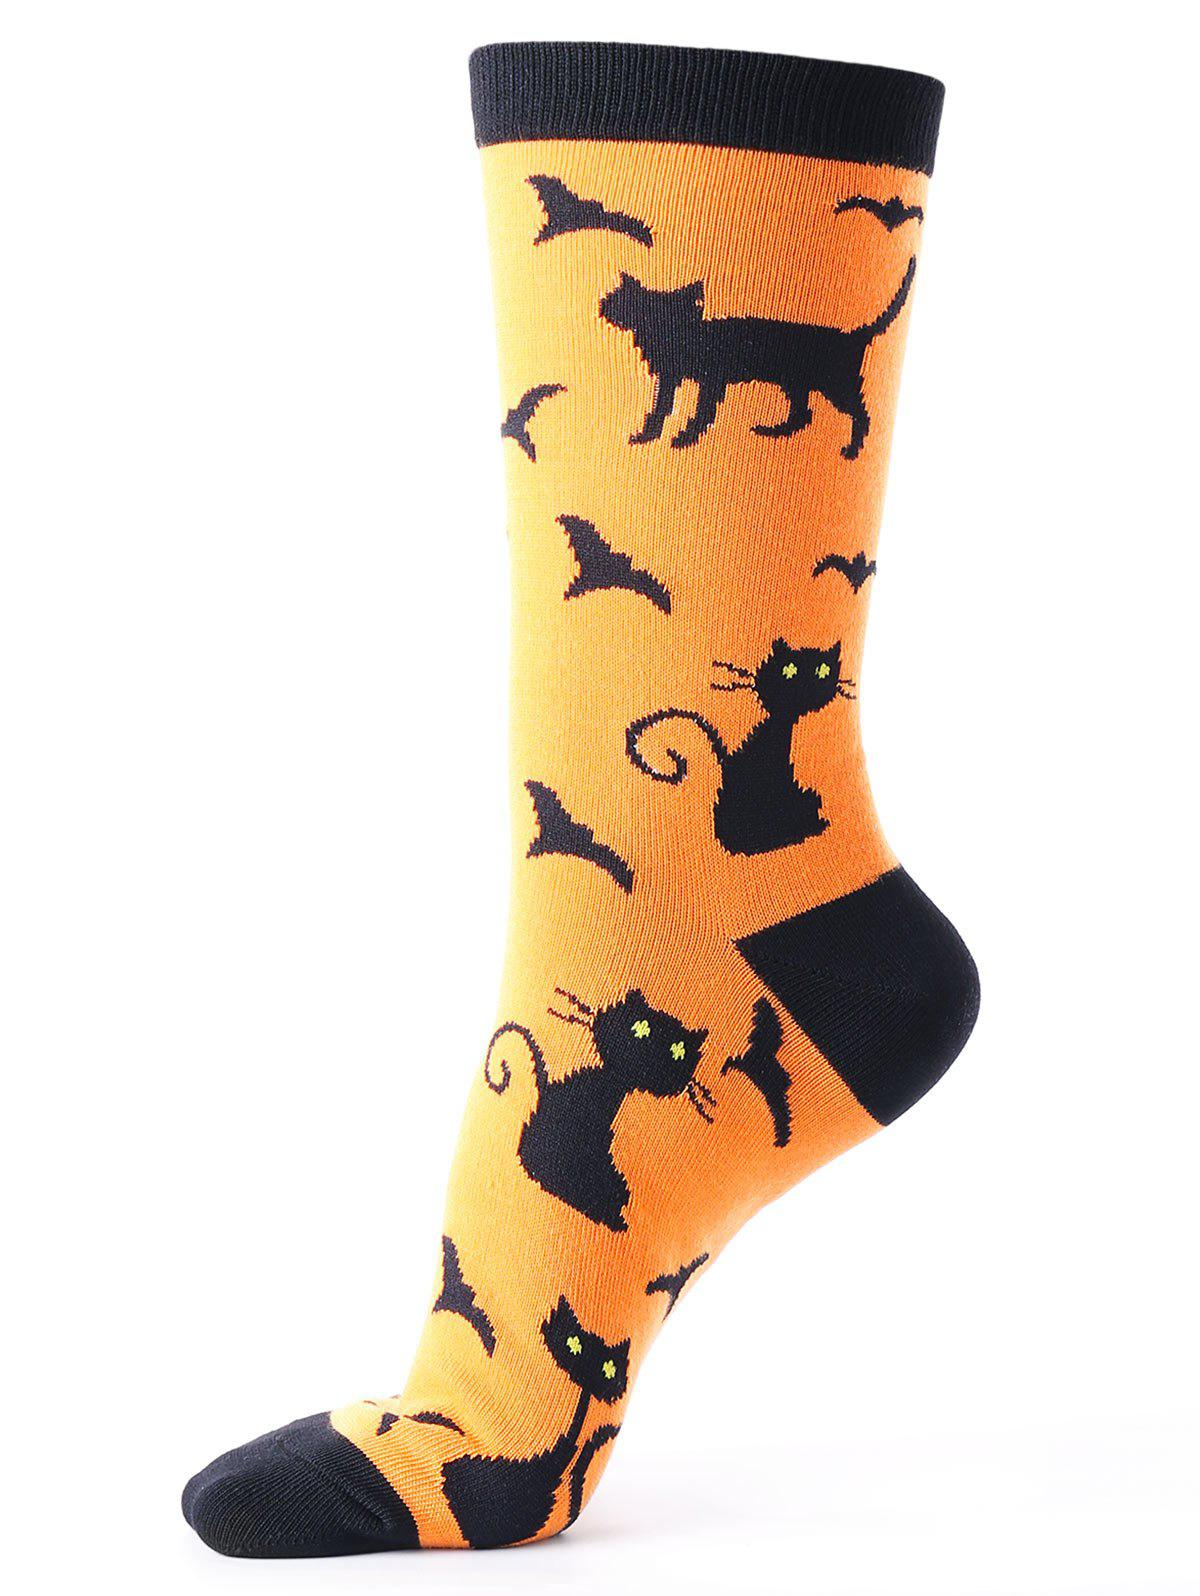 Halloween Calf Socks with Cats Bats PatternACCESSORIES<br><br>Color: ORANGE; Type: Socks; Group: Adult; Gender: For Women; Style: Fashion; Pattern Type: Character; Material: Spandex; Weight: 0.1600kg; Package Contents: 1 x Socks(Pair);